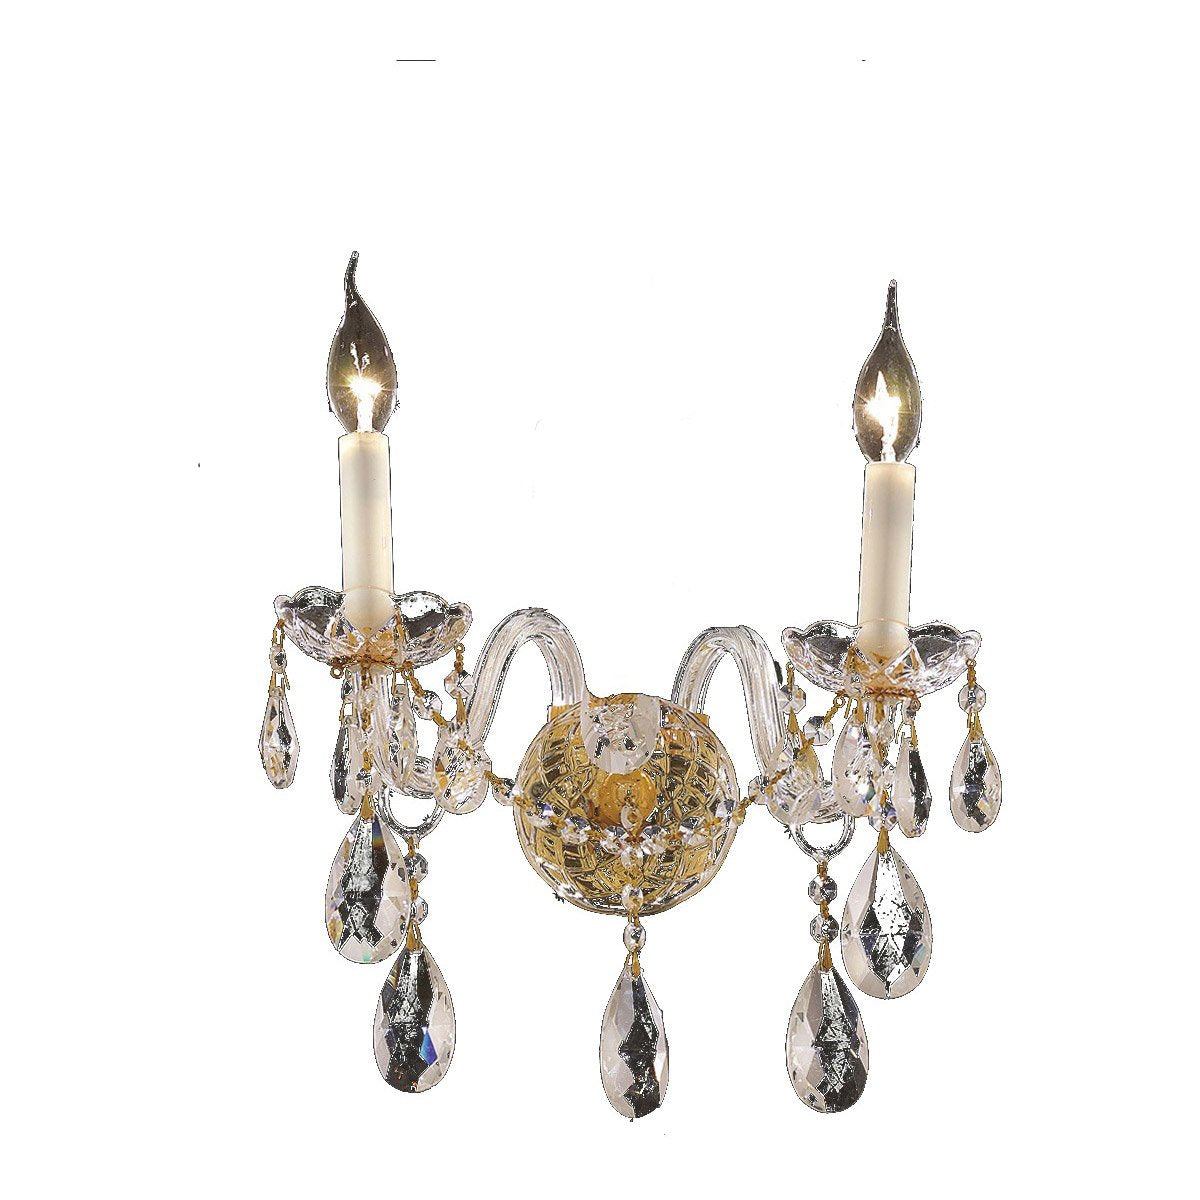 Alexandria 13 Crystal Wall Sconce With 2 Lights - Gold Finish And Royal Cut Crystal Wall Sconce